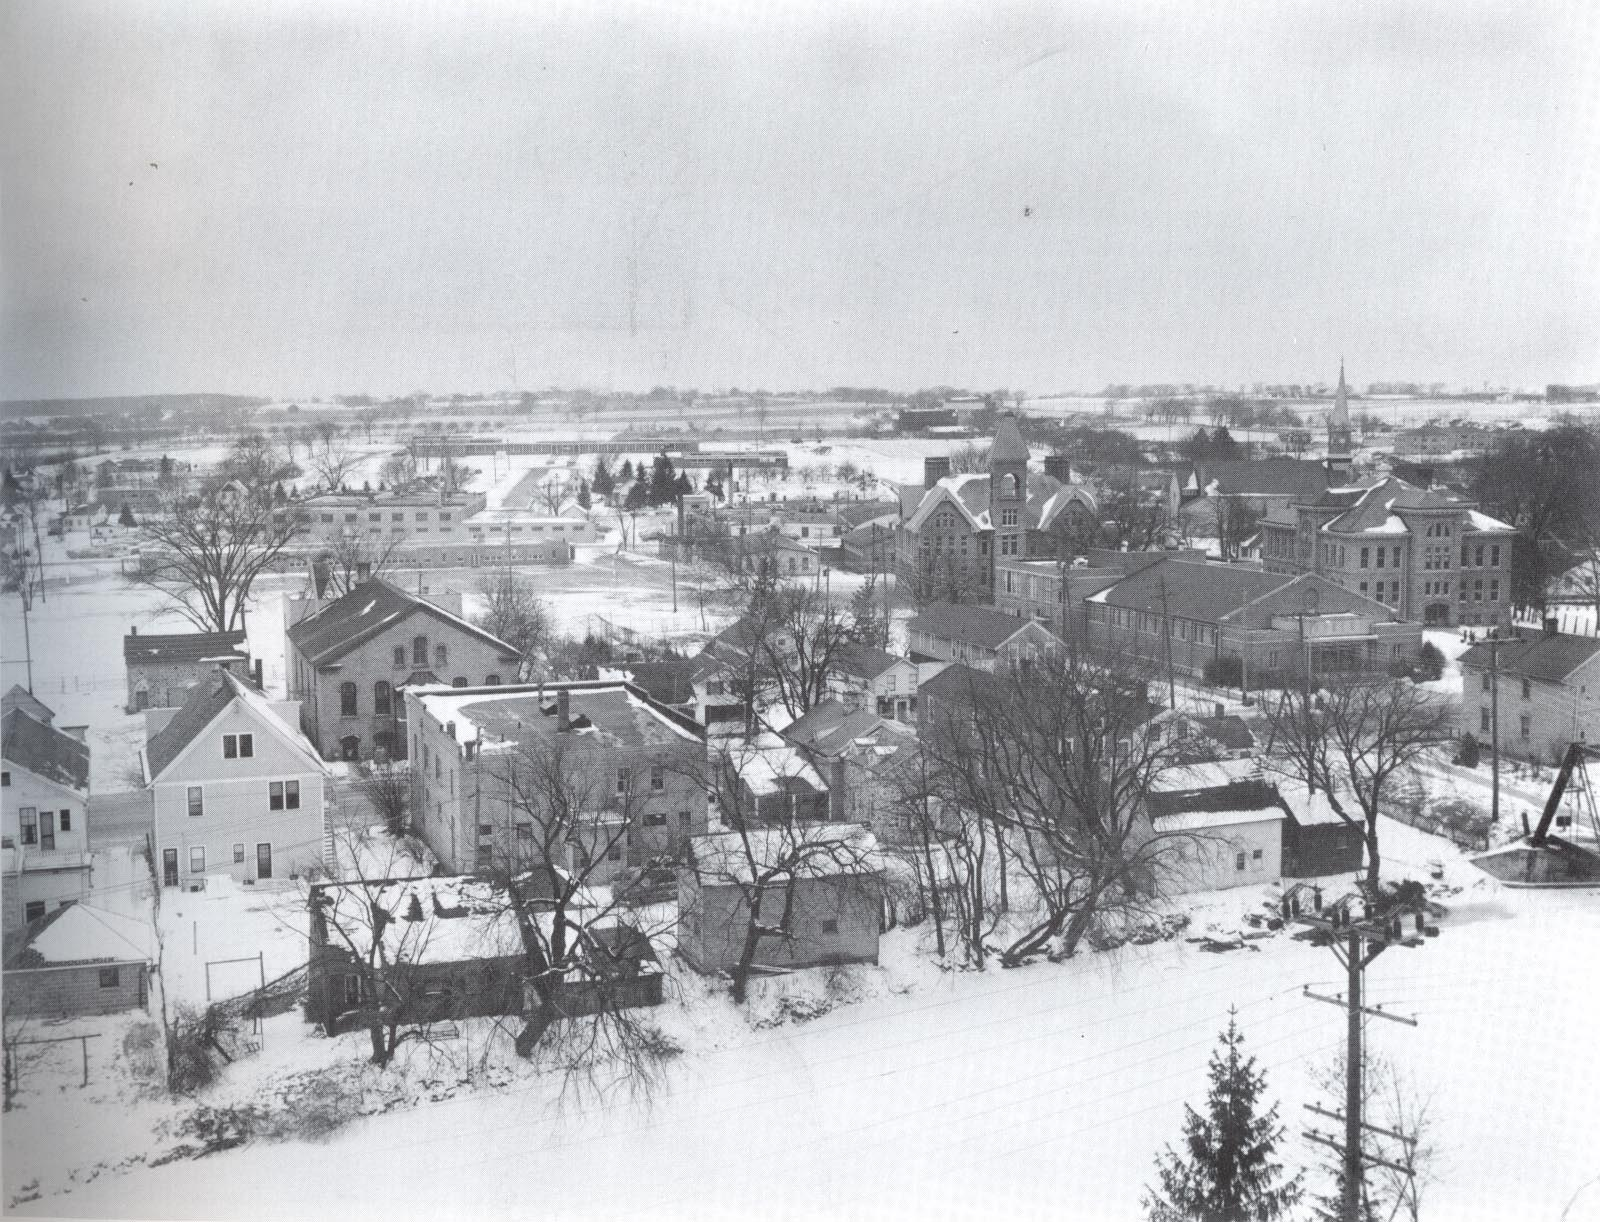 This view from the tower of the old firehouse shows the heart of downtown Cedarburg and a few new additions to the west.